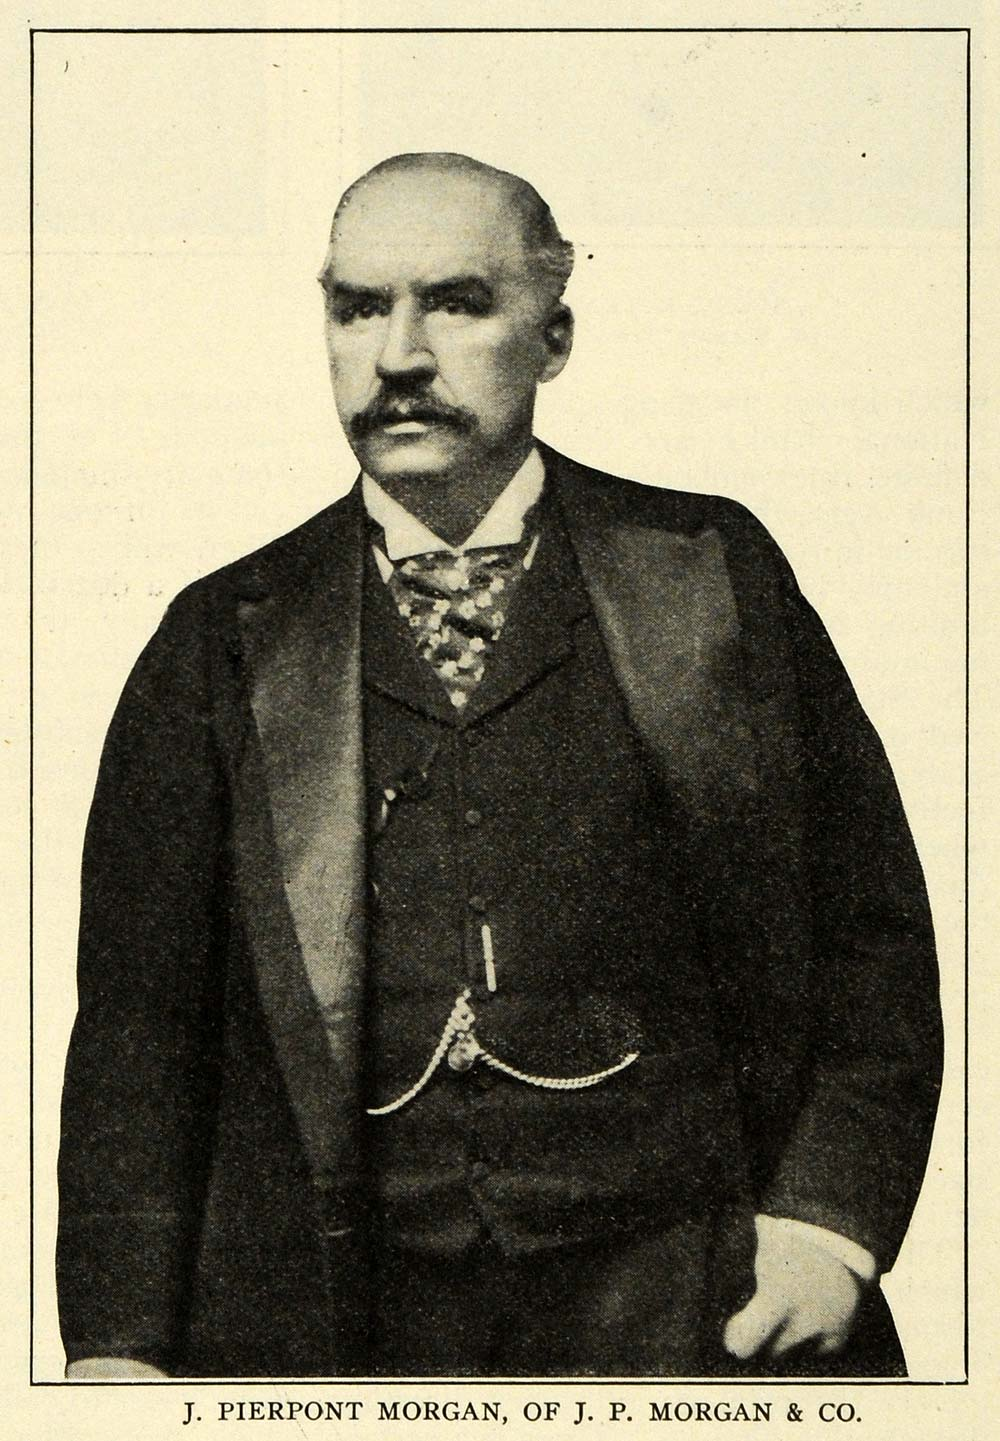 john pierpont morgan's strife for control J peirpont morgan jp morgan monopolized the banking industry and organized us steel and general electric he helped to stabilize the economy during financial strife such as the panic of 1907.